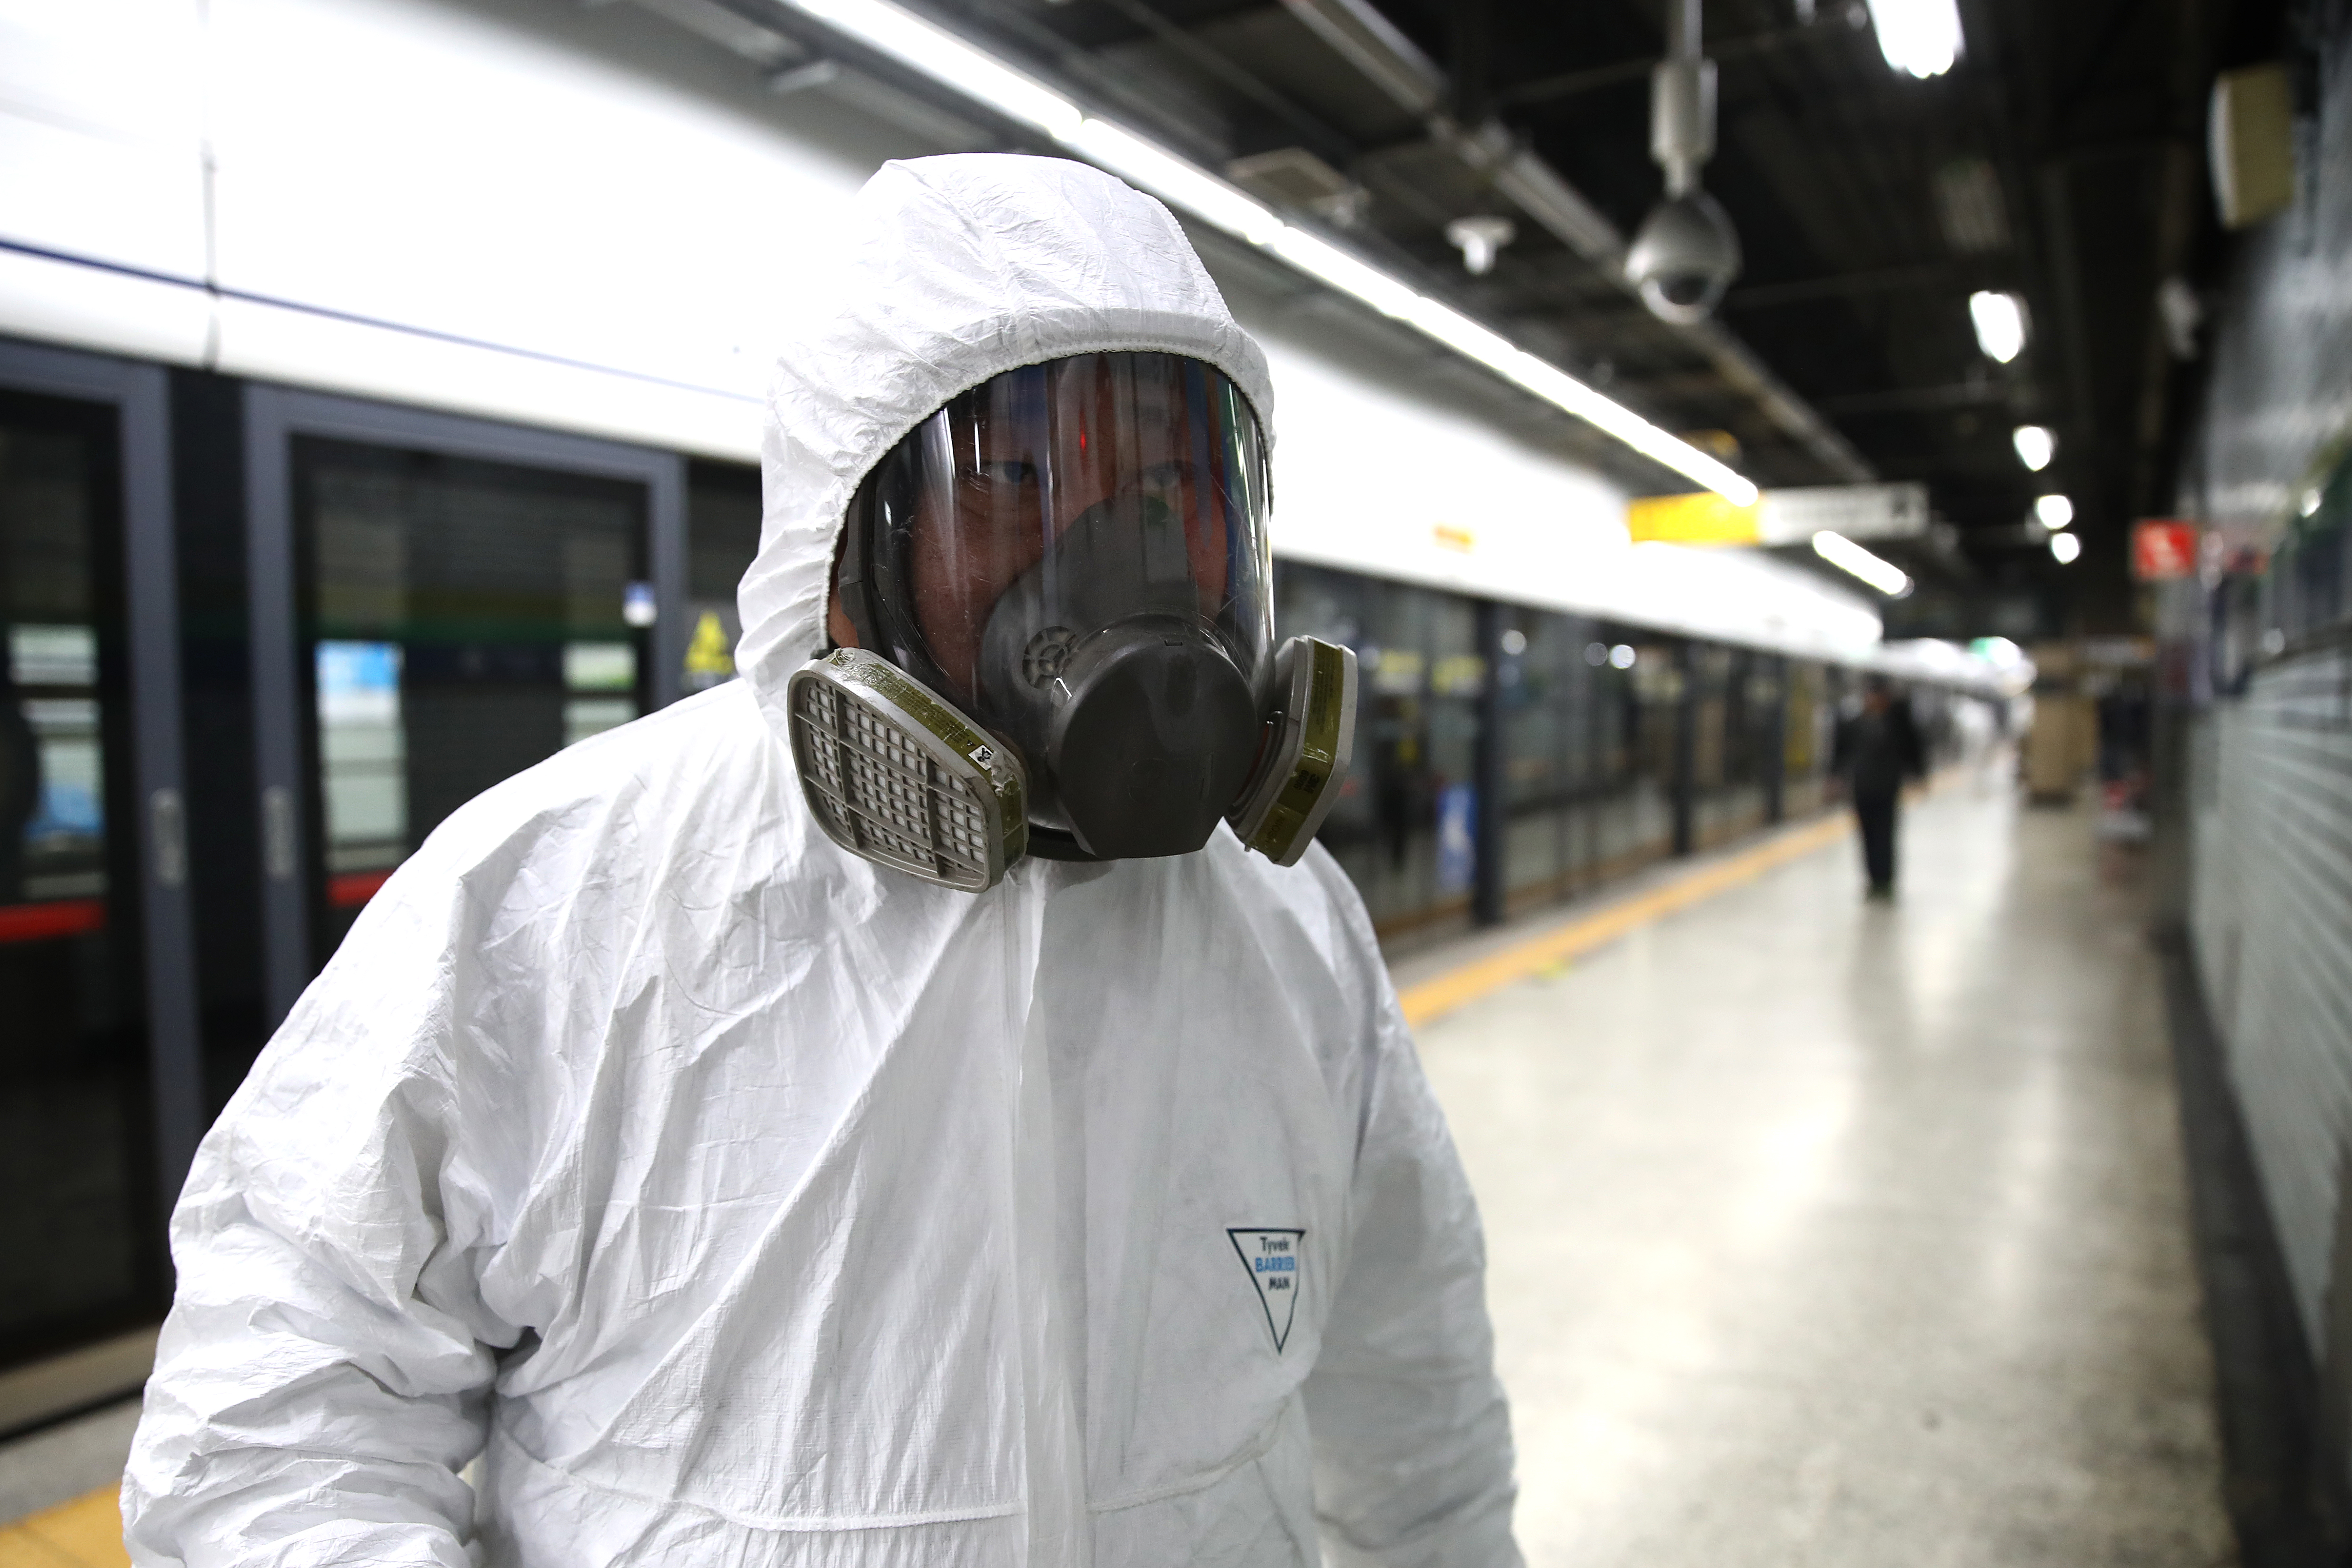 A disinfection worker wears protective gear and prepares to disinfect against the coronavirus at a subway station in Seoul.